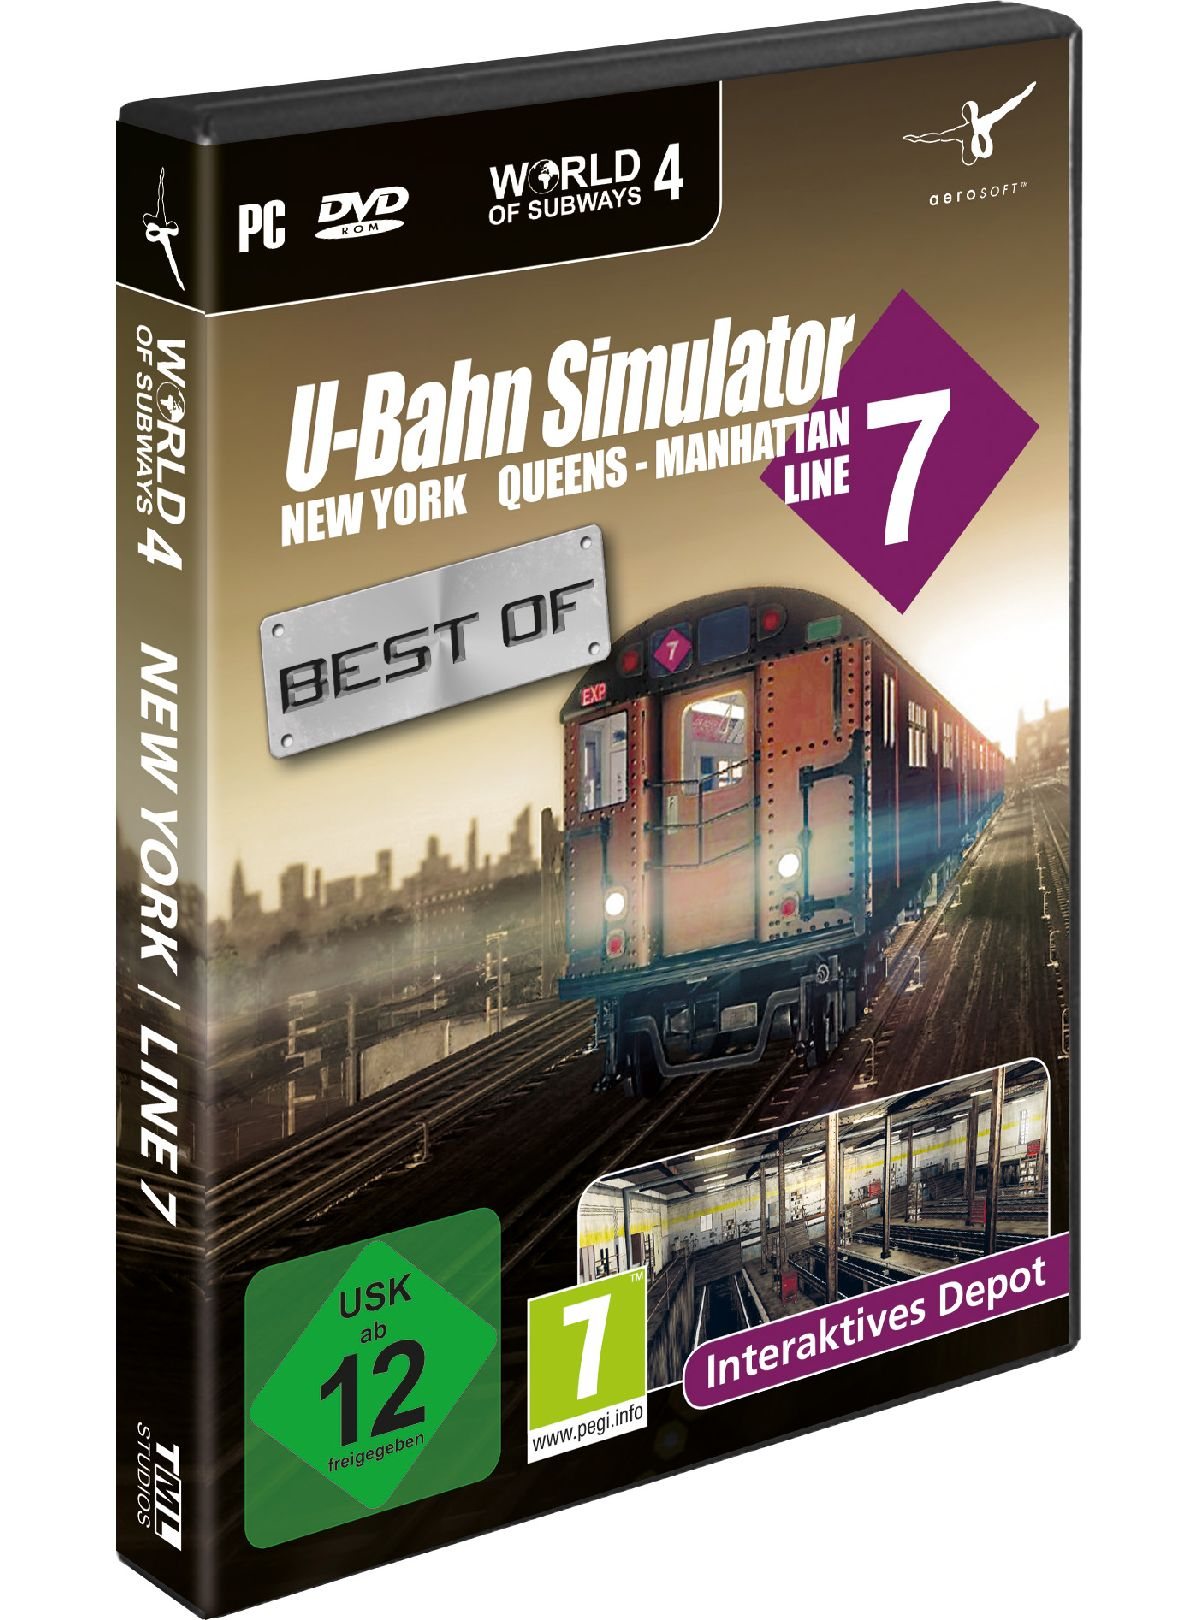 NBG Best of U-Bahn Simulator Vol. 4 New York »PC«